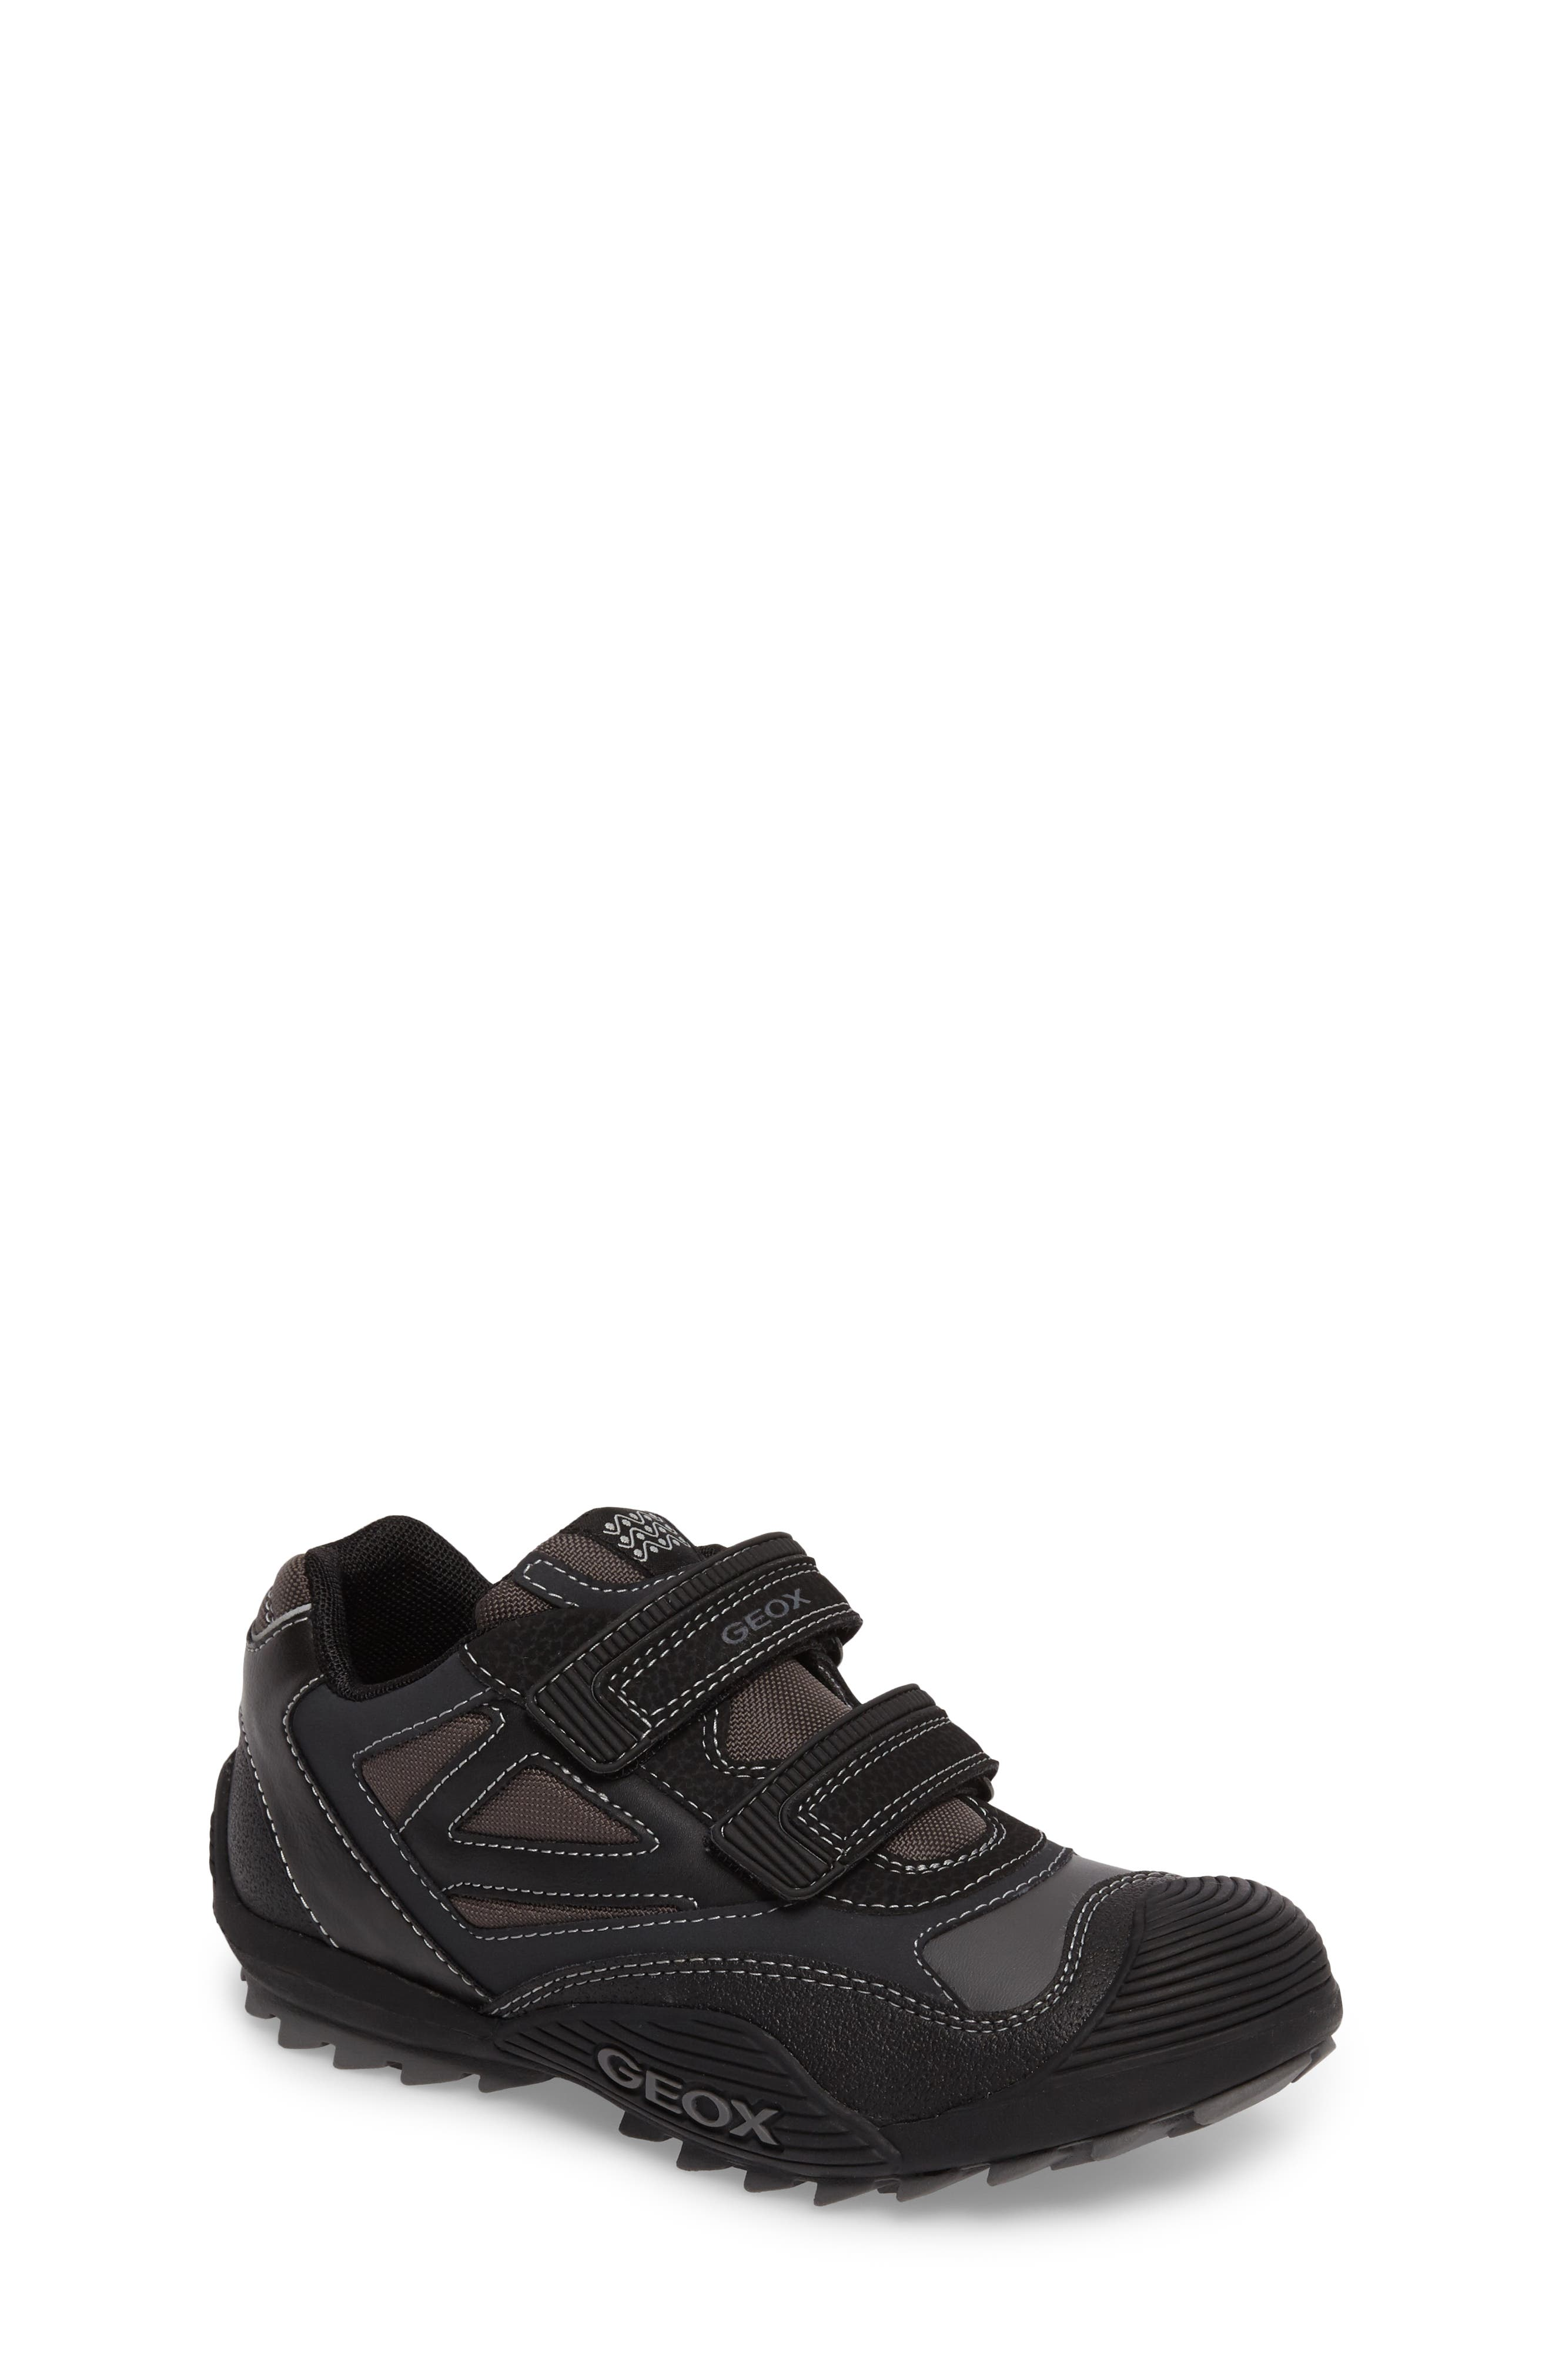 Geox Savage Sneaker (Toddler, Little Kid & Big Kid)